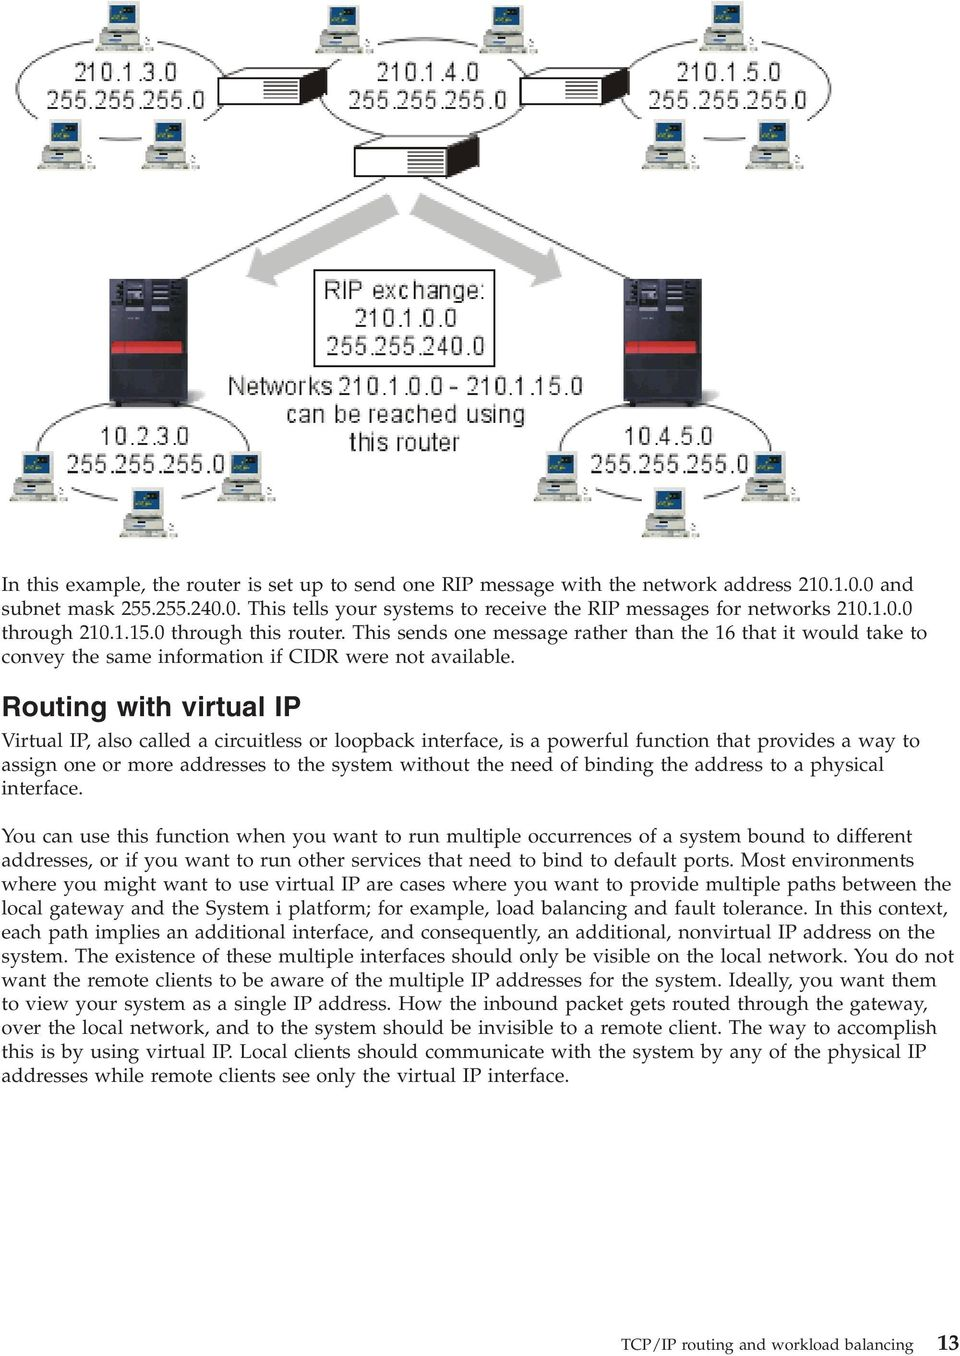 Routing with virtual IP Virtual IP, also called a circuitless or loopback interface, is a powerful function that provides a way to assign one or more addresses to the system without the need of